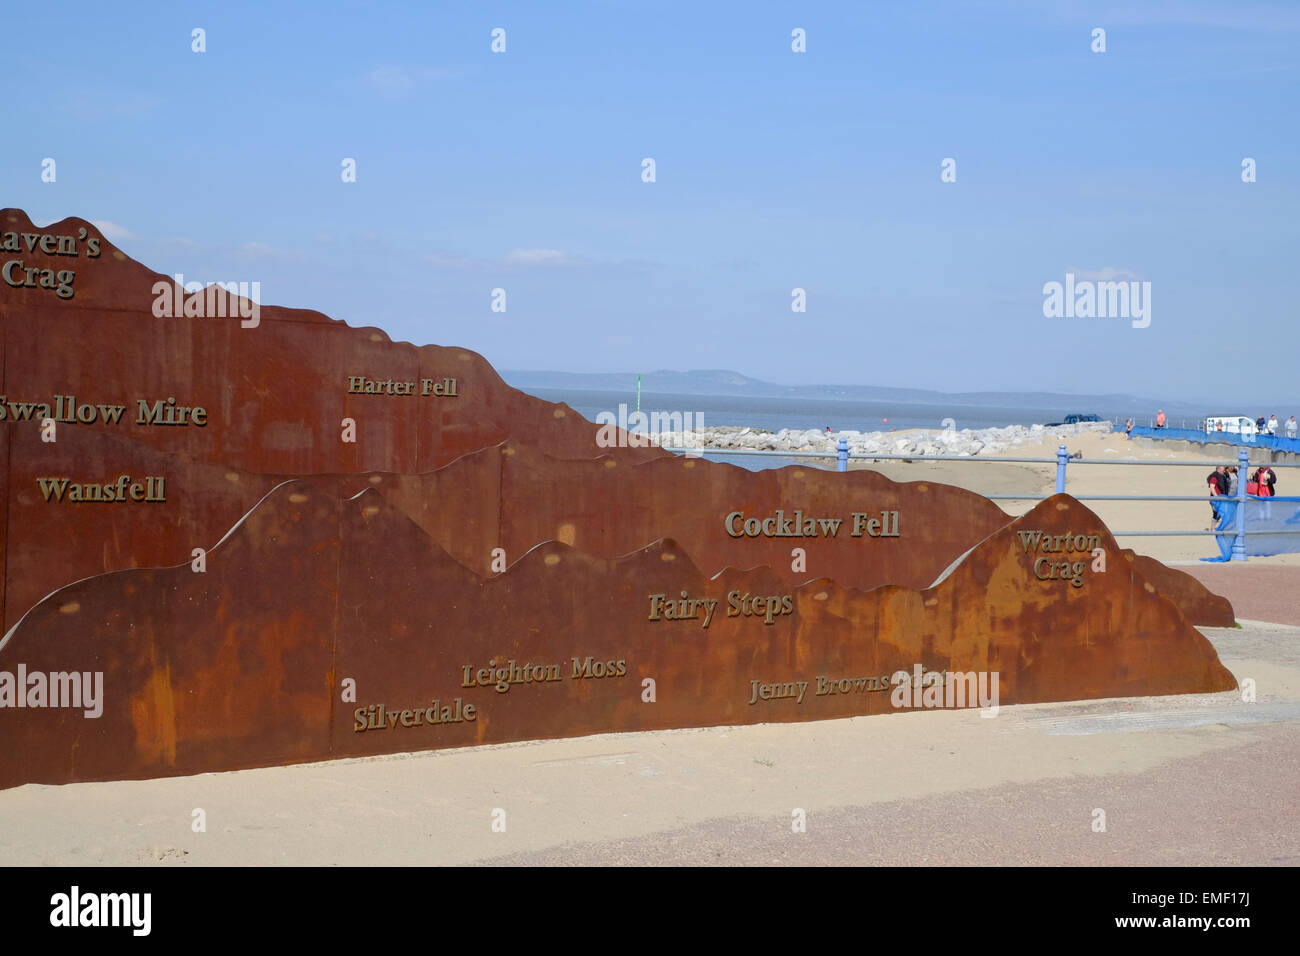 Morecambe Lancashire:  A large display on the promenade provides information on the views of the Lakeland fells - Stock Image